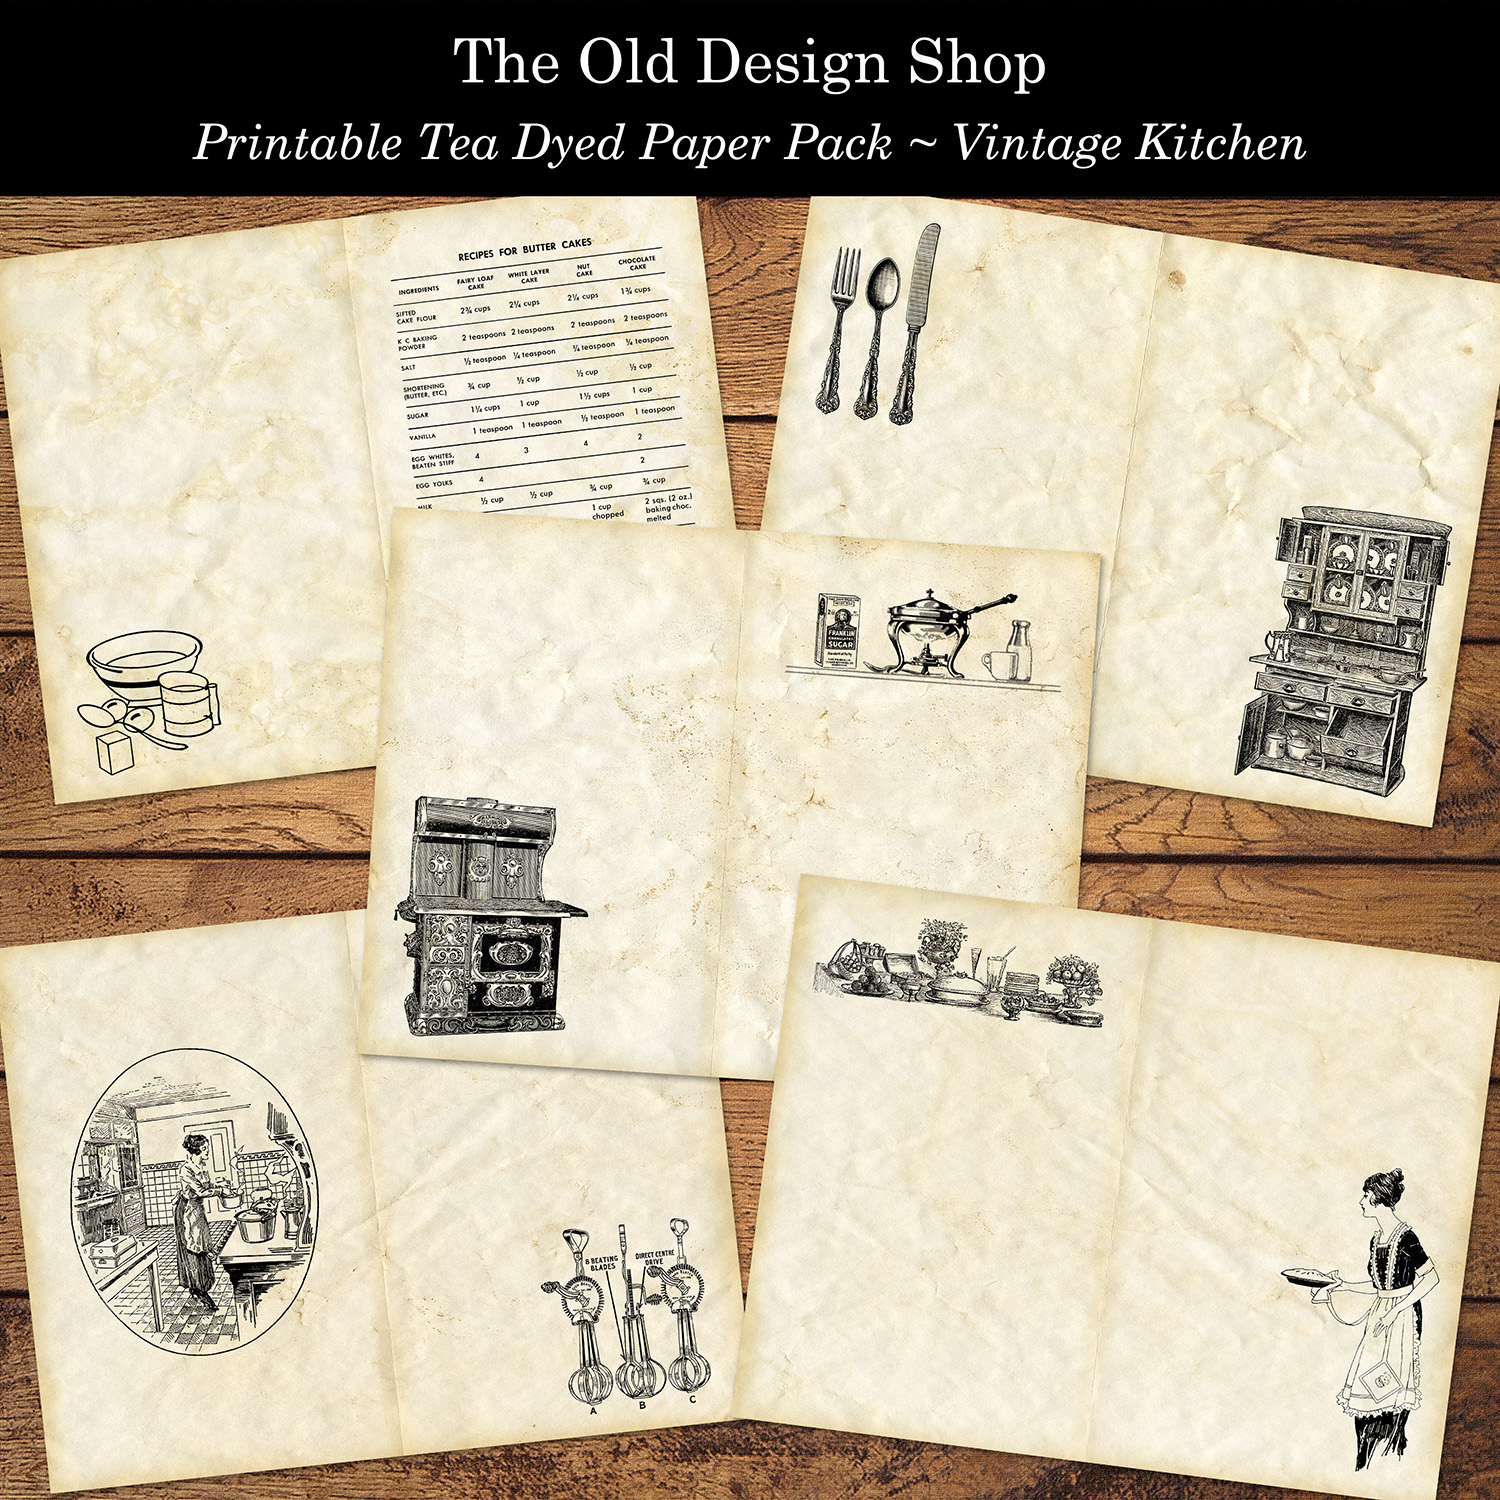 printable tea dyed vintage kitchen paper pack